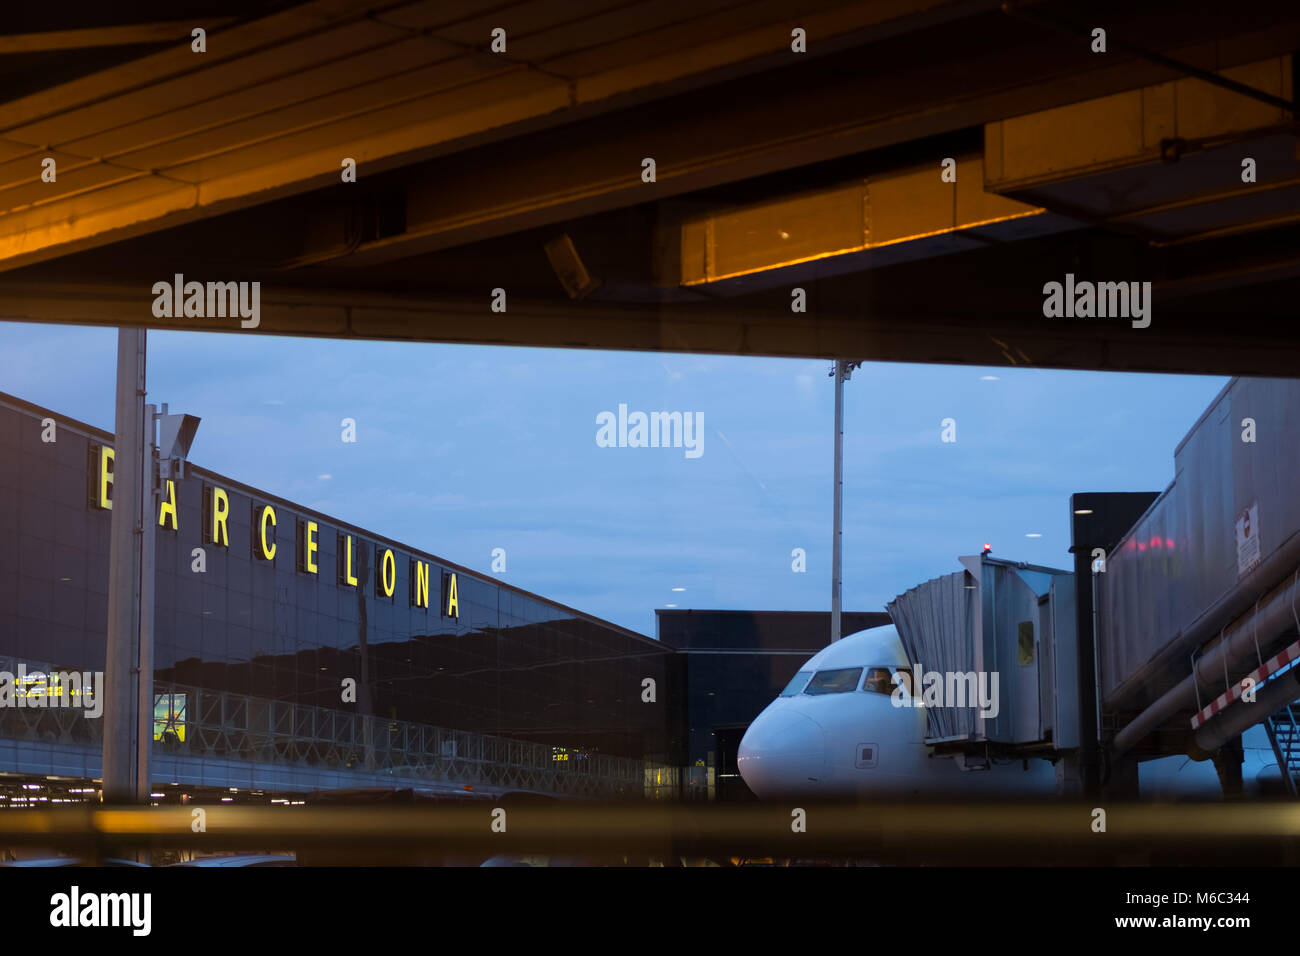 Barcelona, Spain - September 25, 2017; Glass facade and airplane as seen through the boarding area of Barcelona - Stock Image